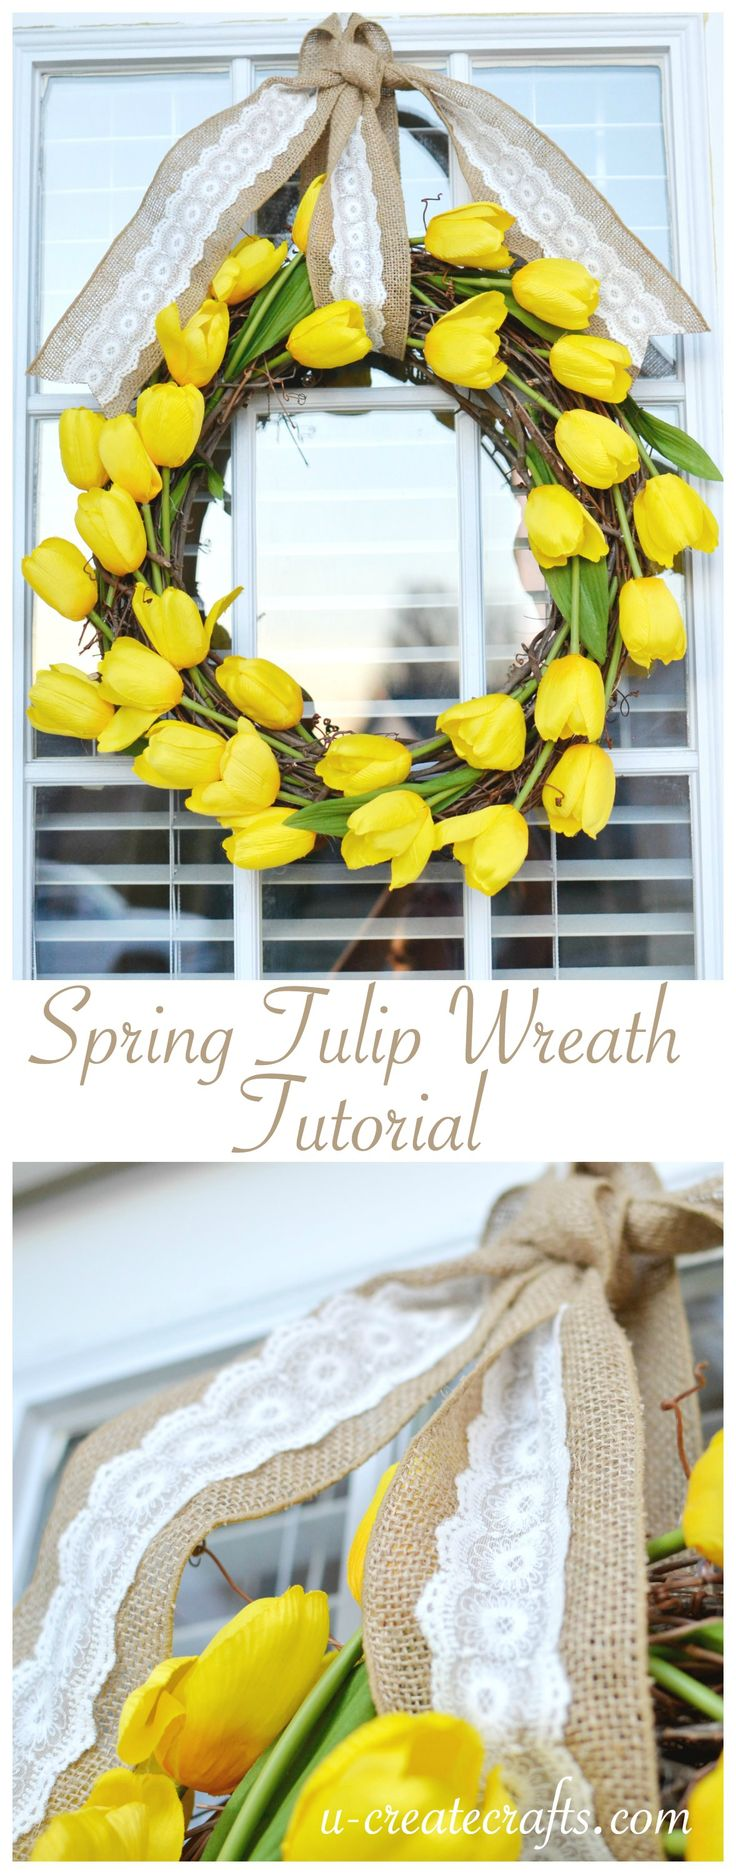 Spring Tulip Wreath Tutorial by MichaelsMakers U Create - create it in about 10 minutes!